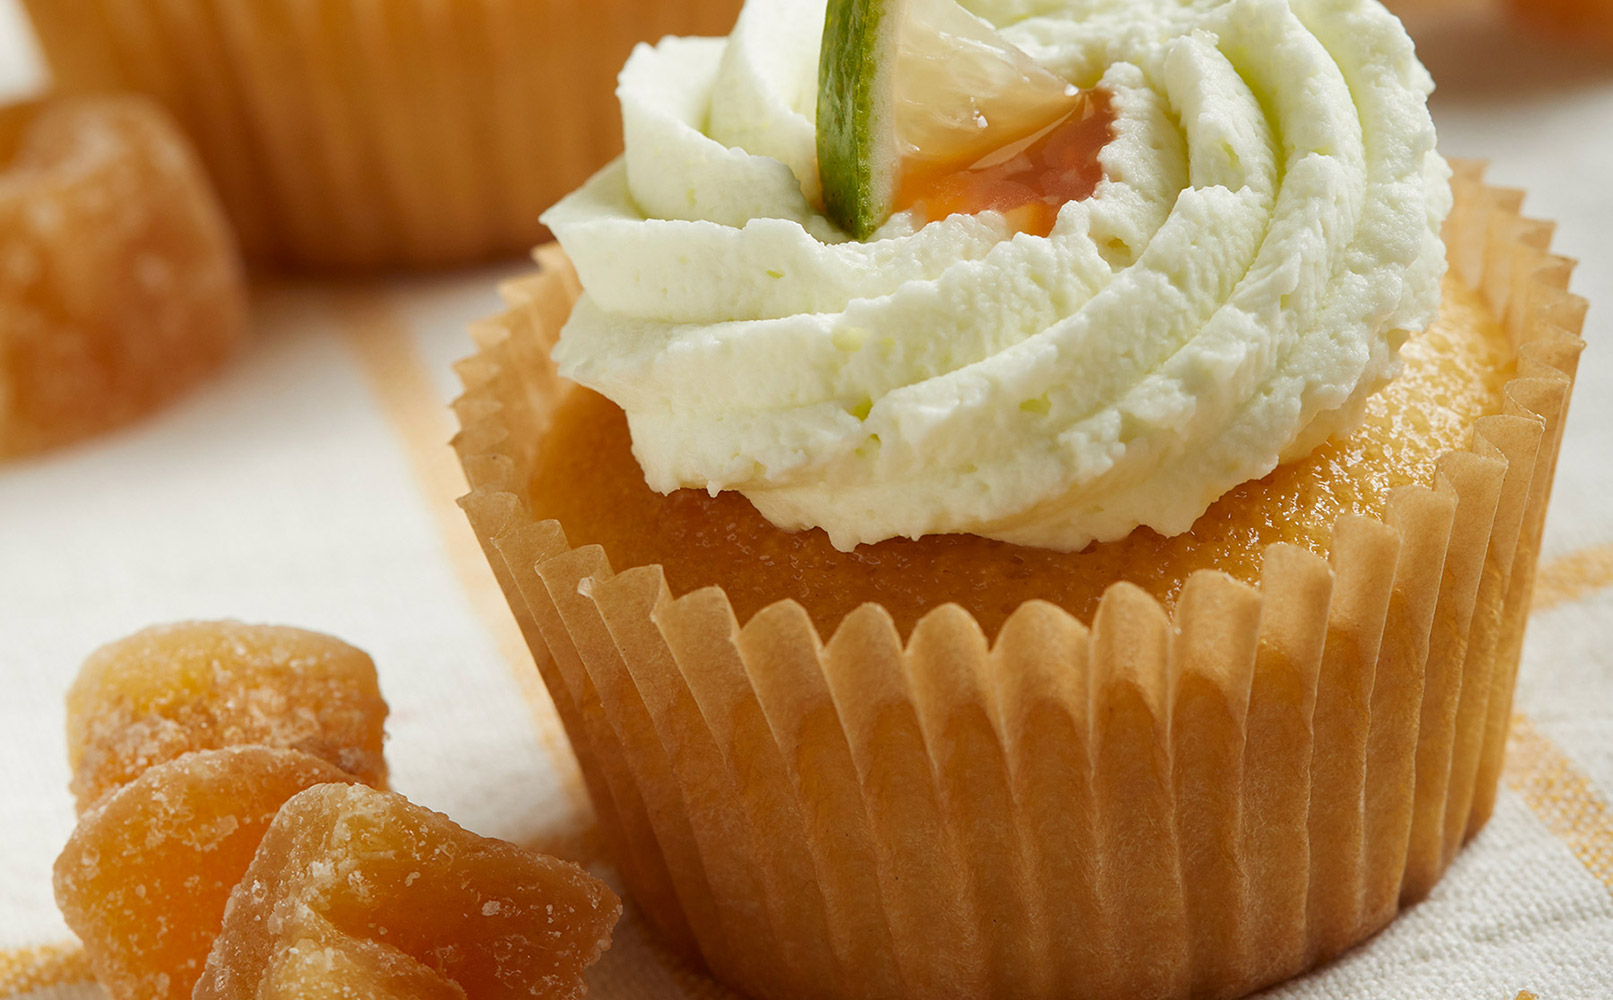 Key Lime Cupcake with Ginger Caramel Drizzle